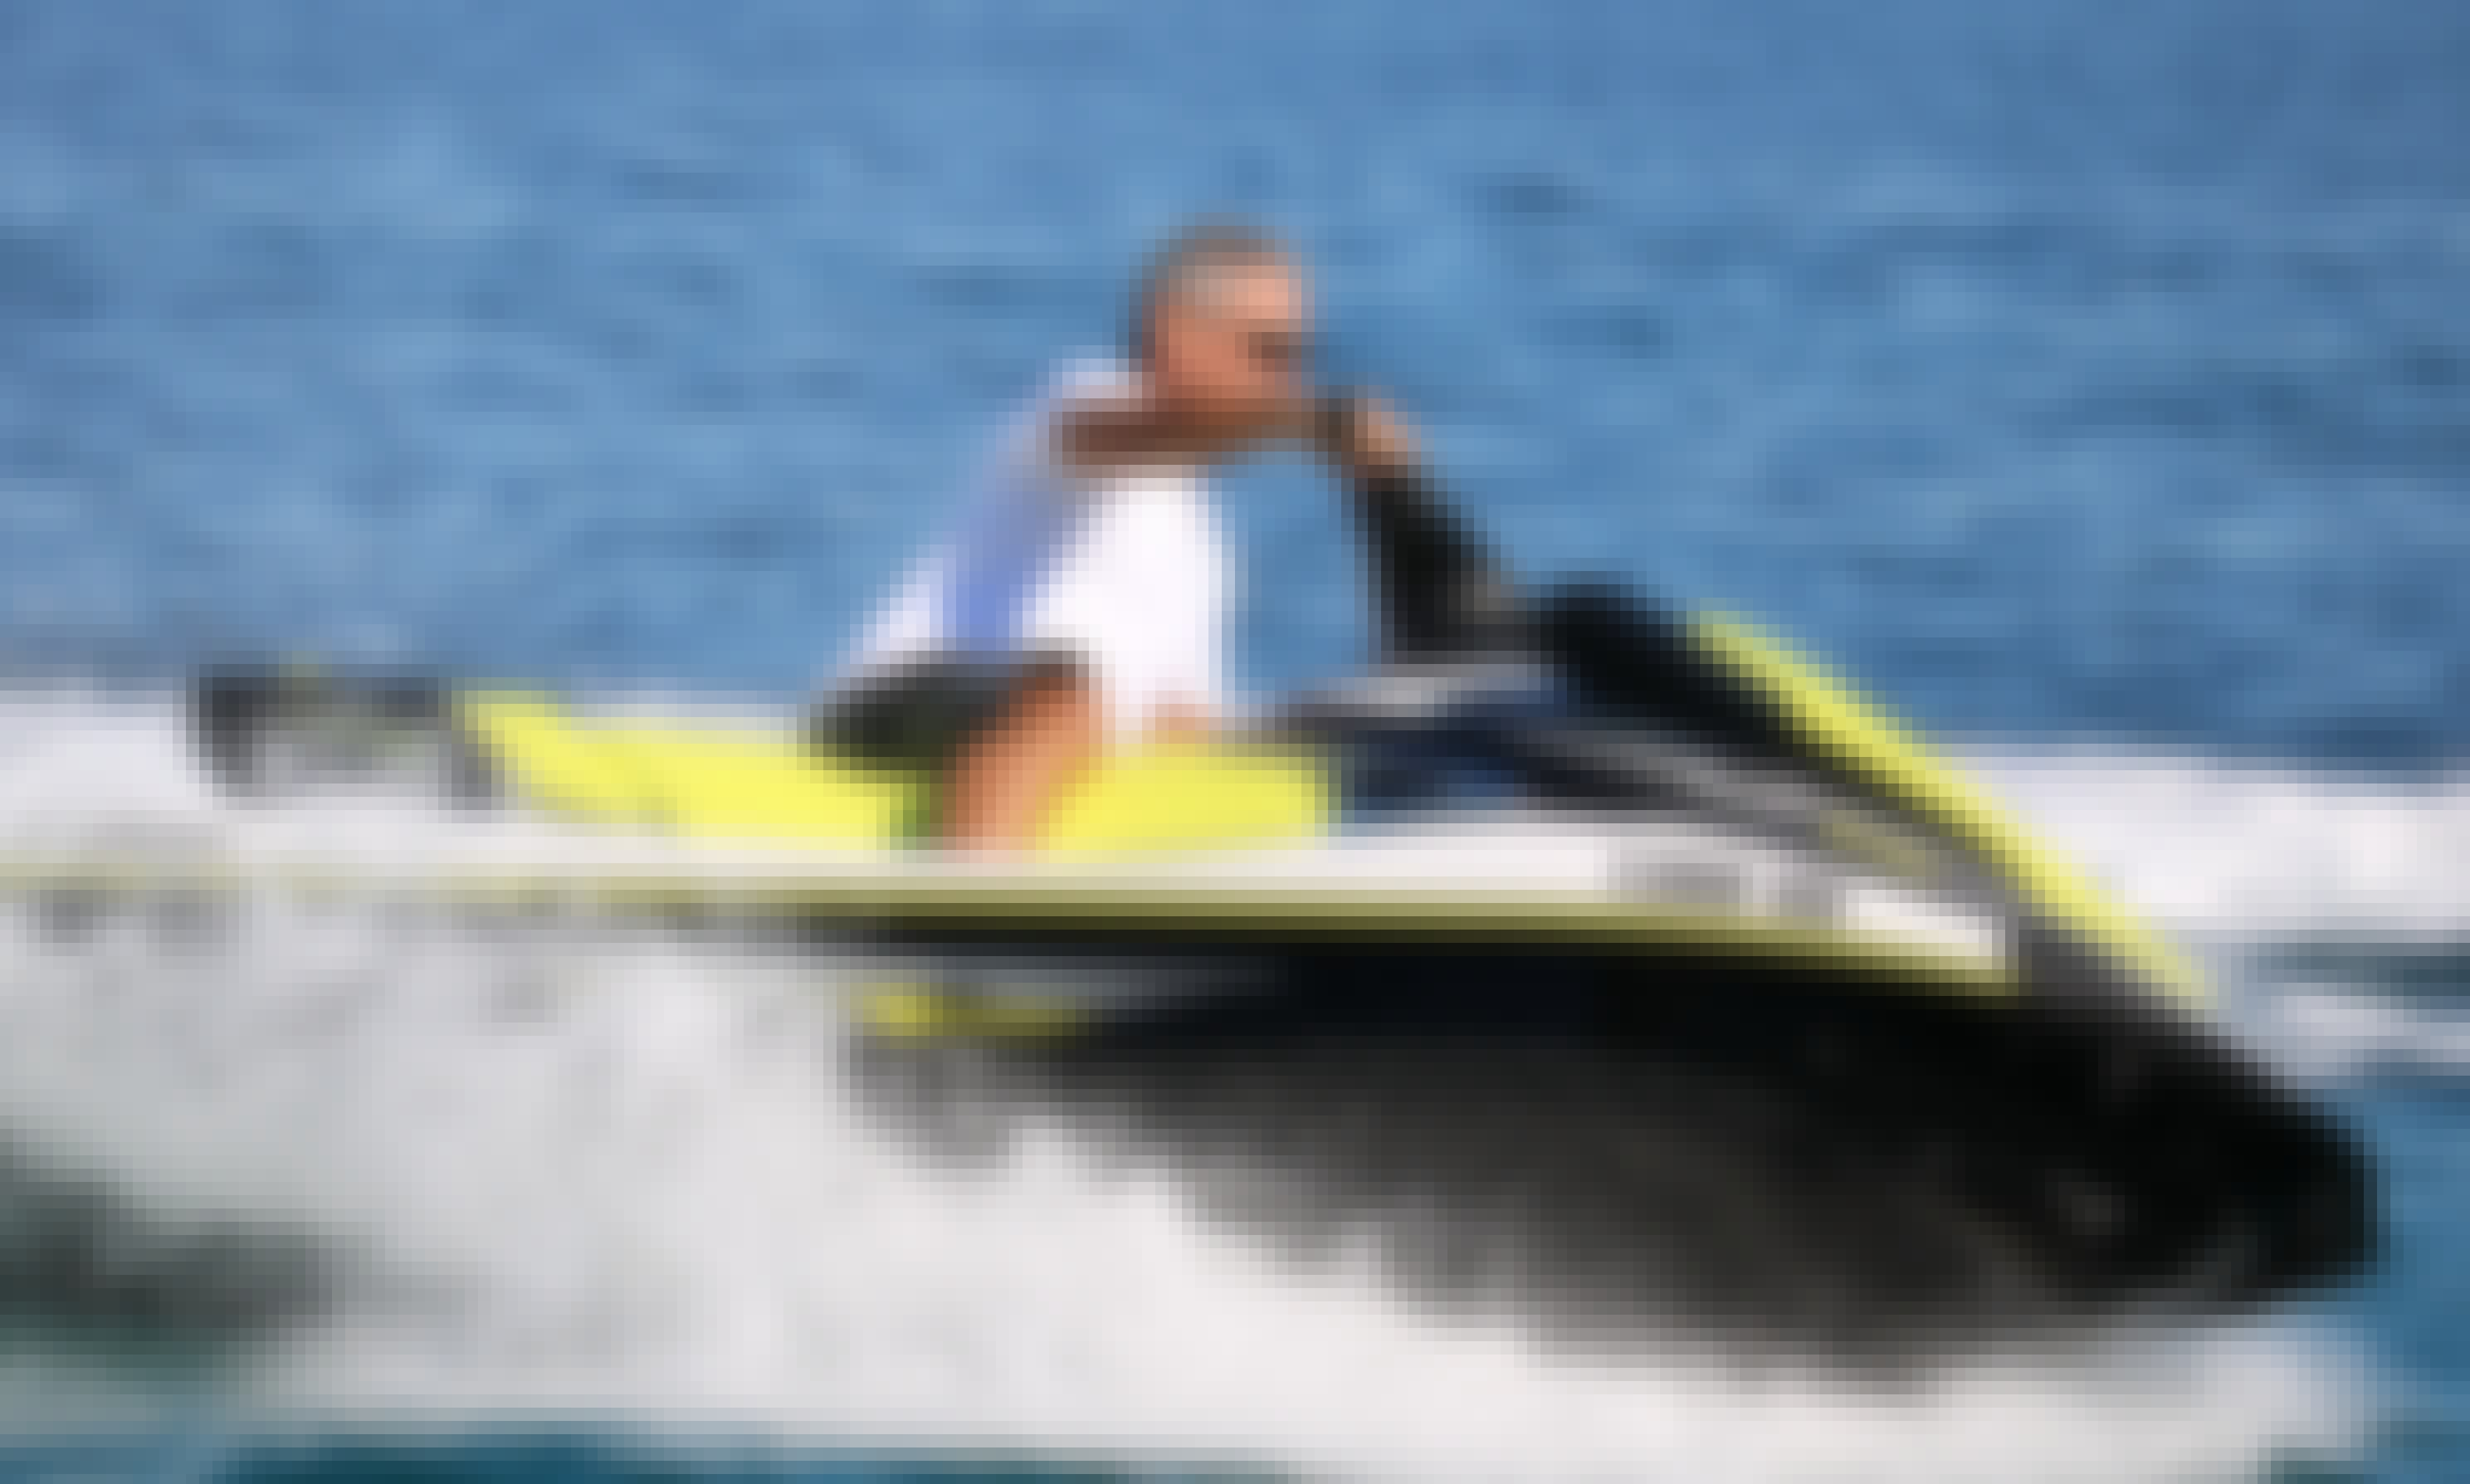 New 2-Person Yamaha VX Jet Ski for Ren in Tribunj, Croatia! Driving License for Boat is Required!